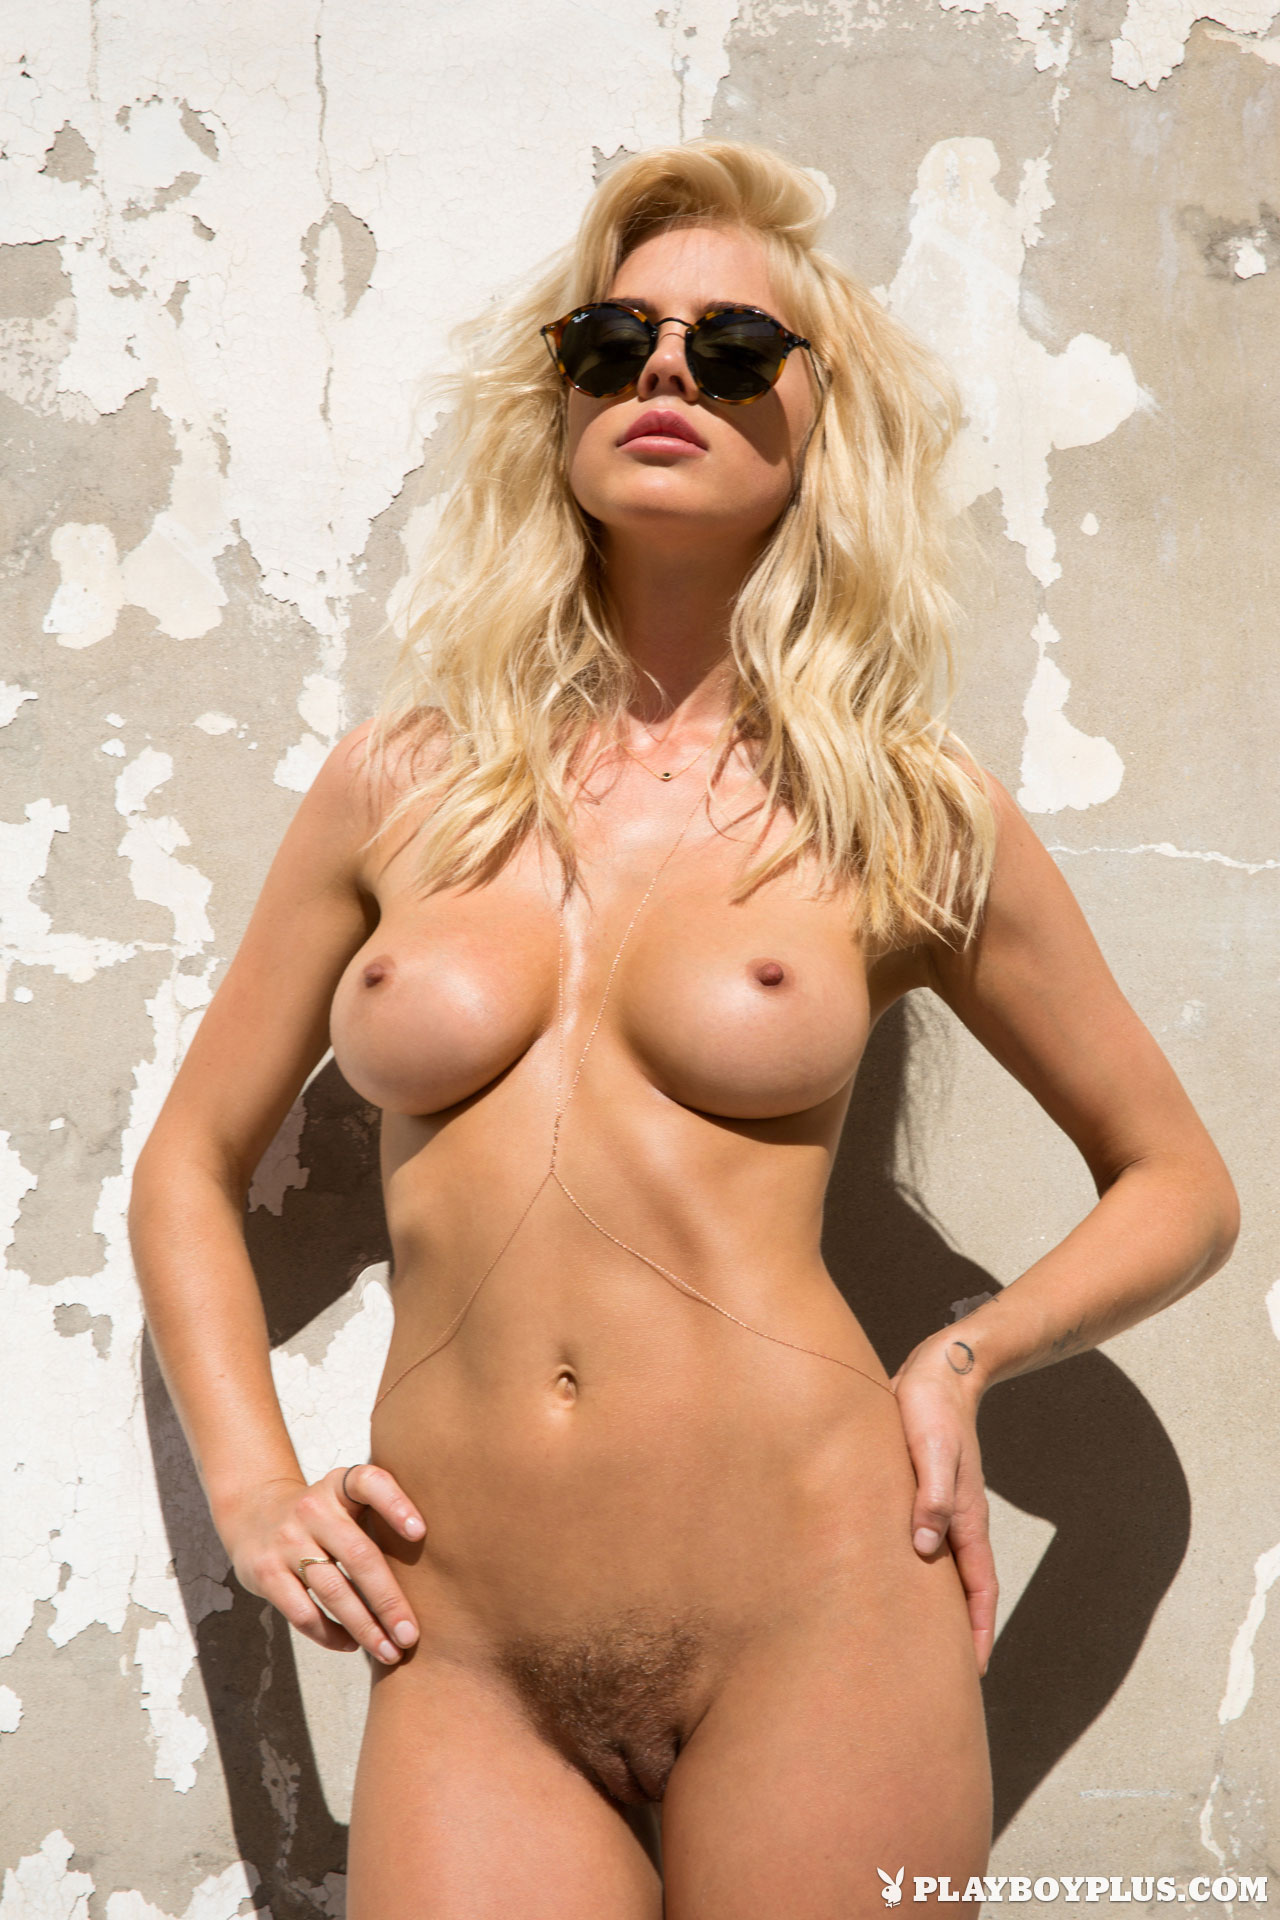 nude-girls-sunglasses-boobs-naked-mix-89